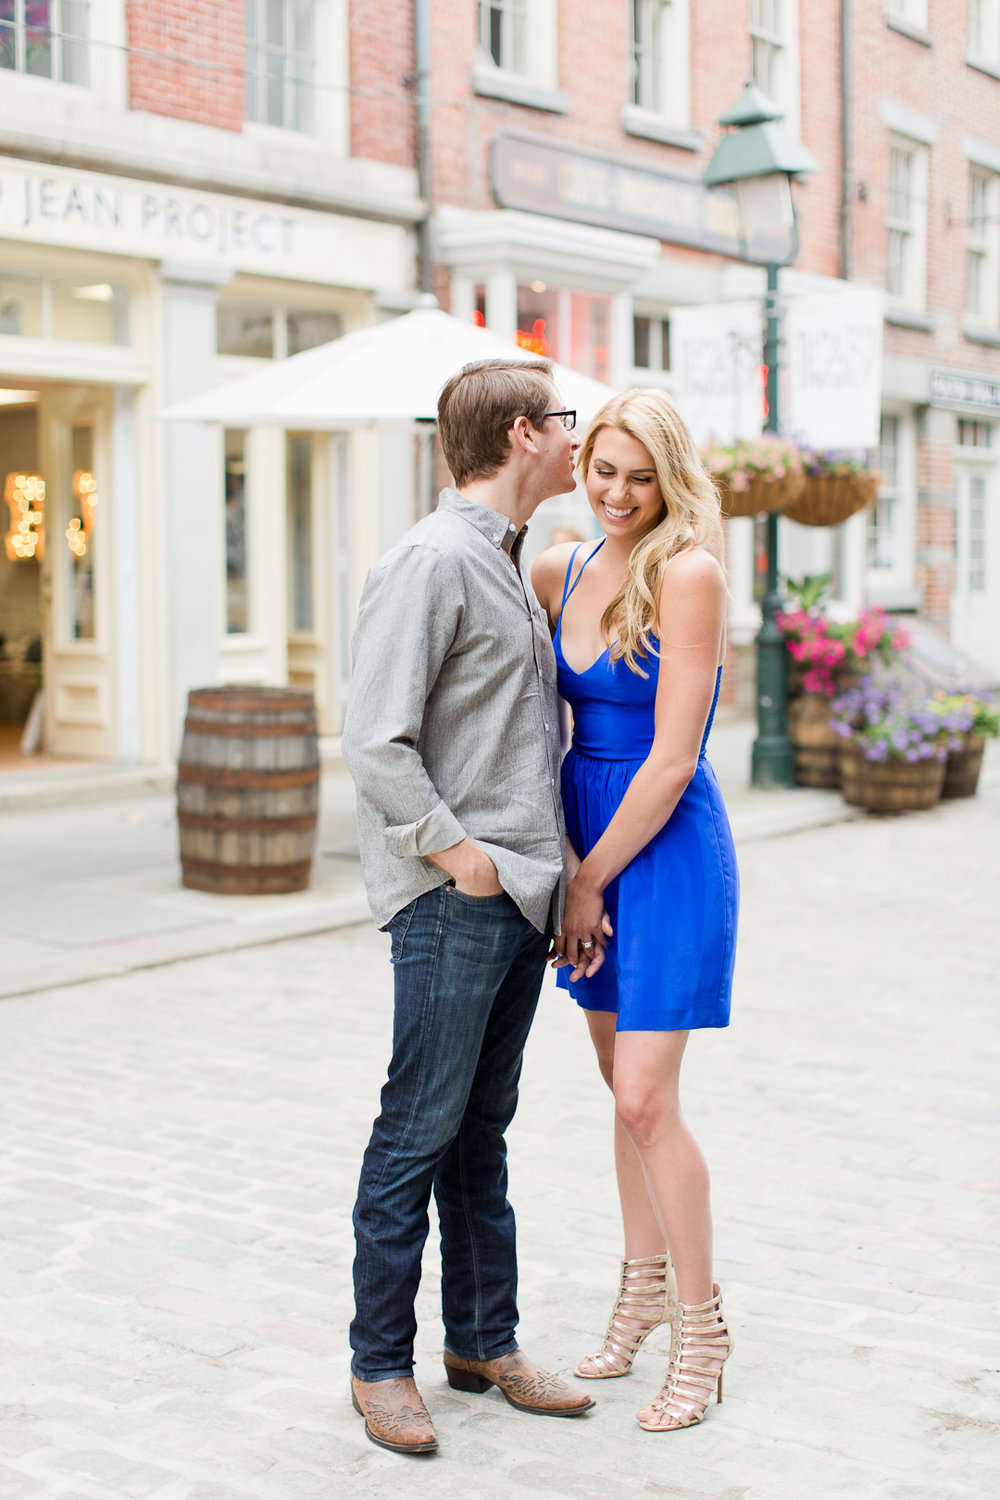 Melissa Kruse Photography - Kelley & Billy Engagement Photos-40.jpg